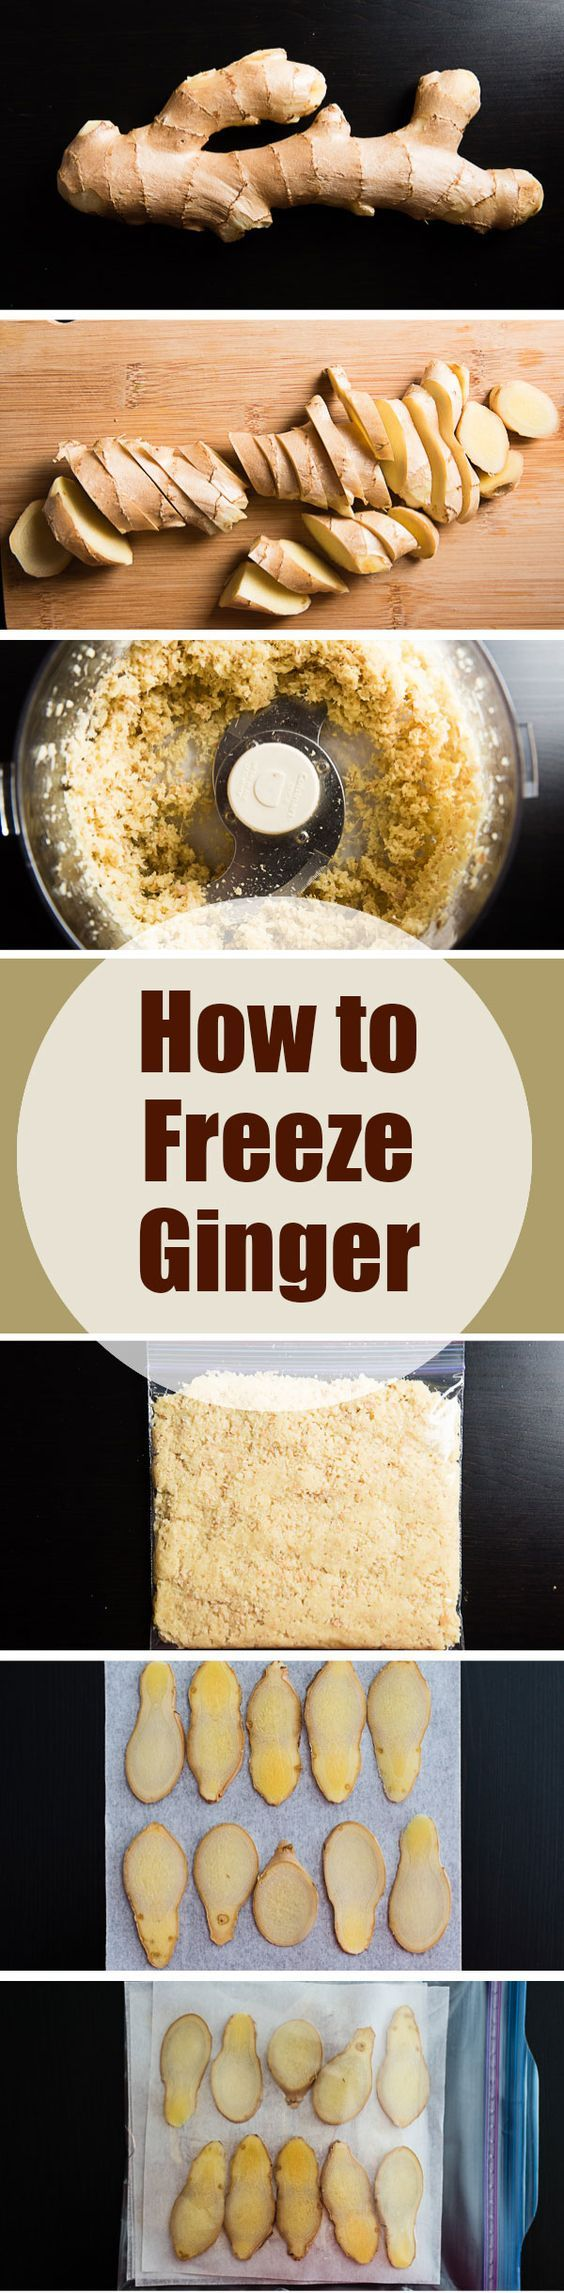 How to Freeze Ginger | omnivorescookbook.com What?? I don't have to peel it?!?!?!?